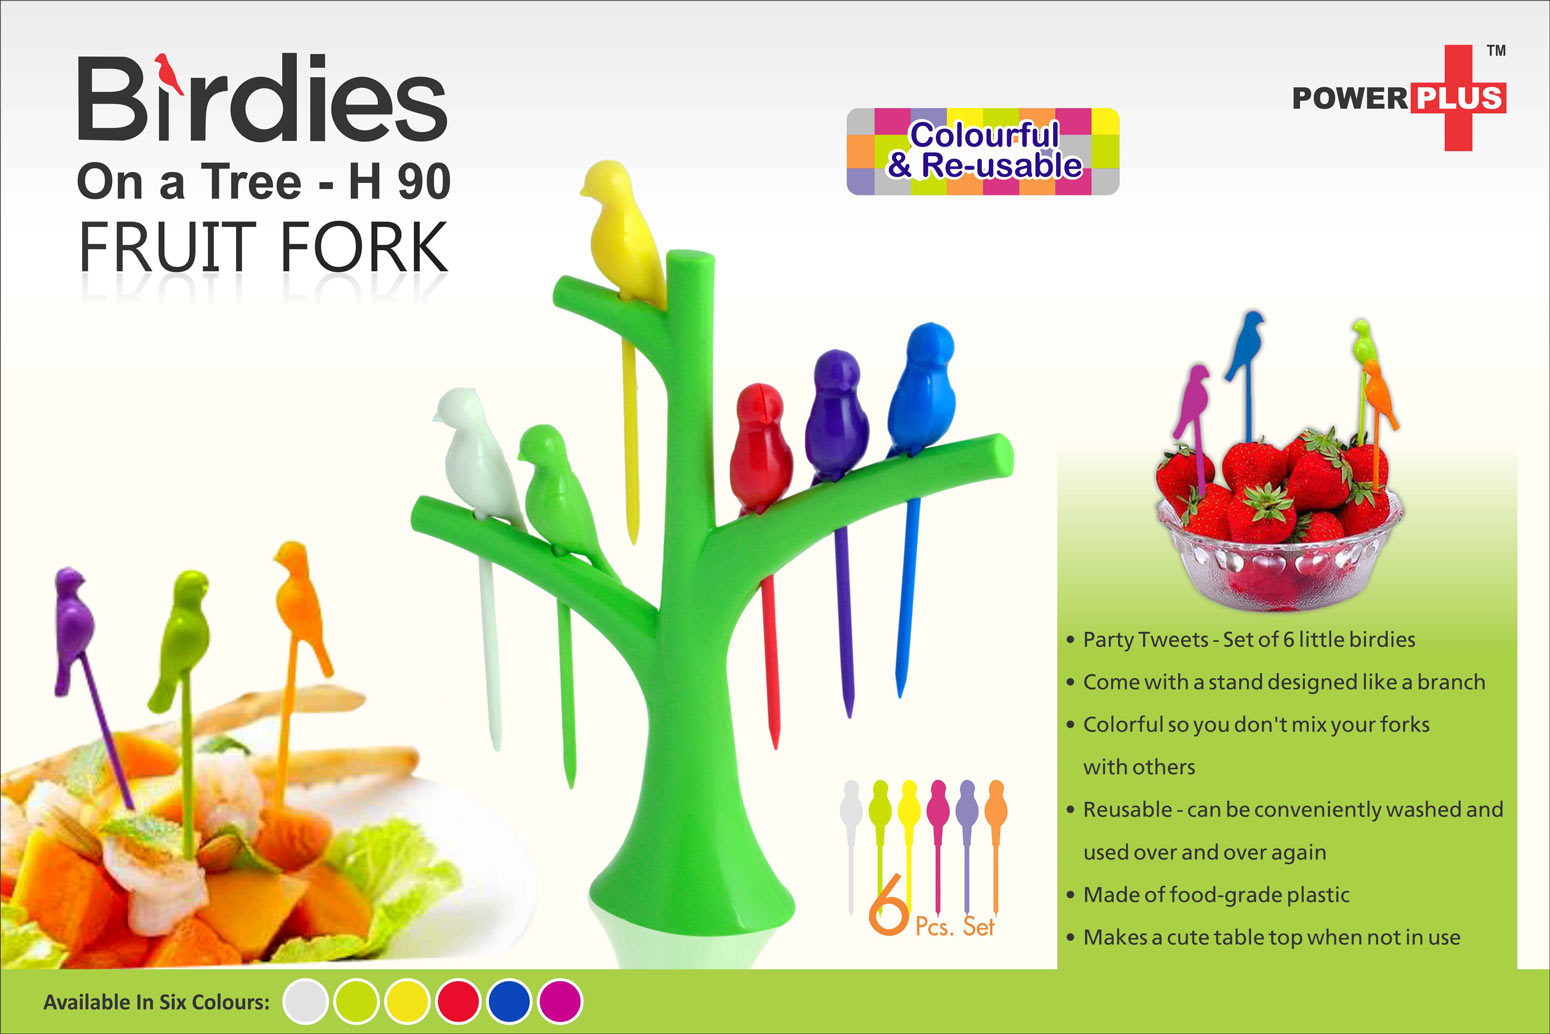 H90 - Birdies on a tree fruit fork set